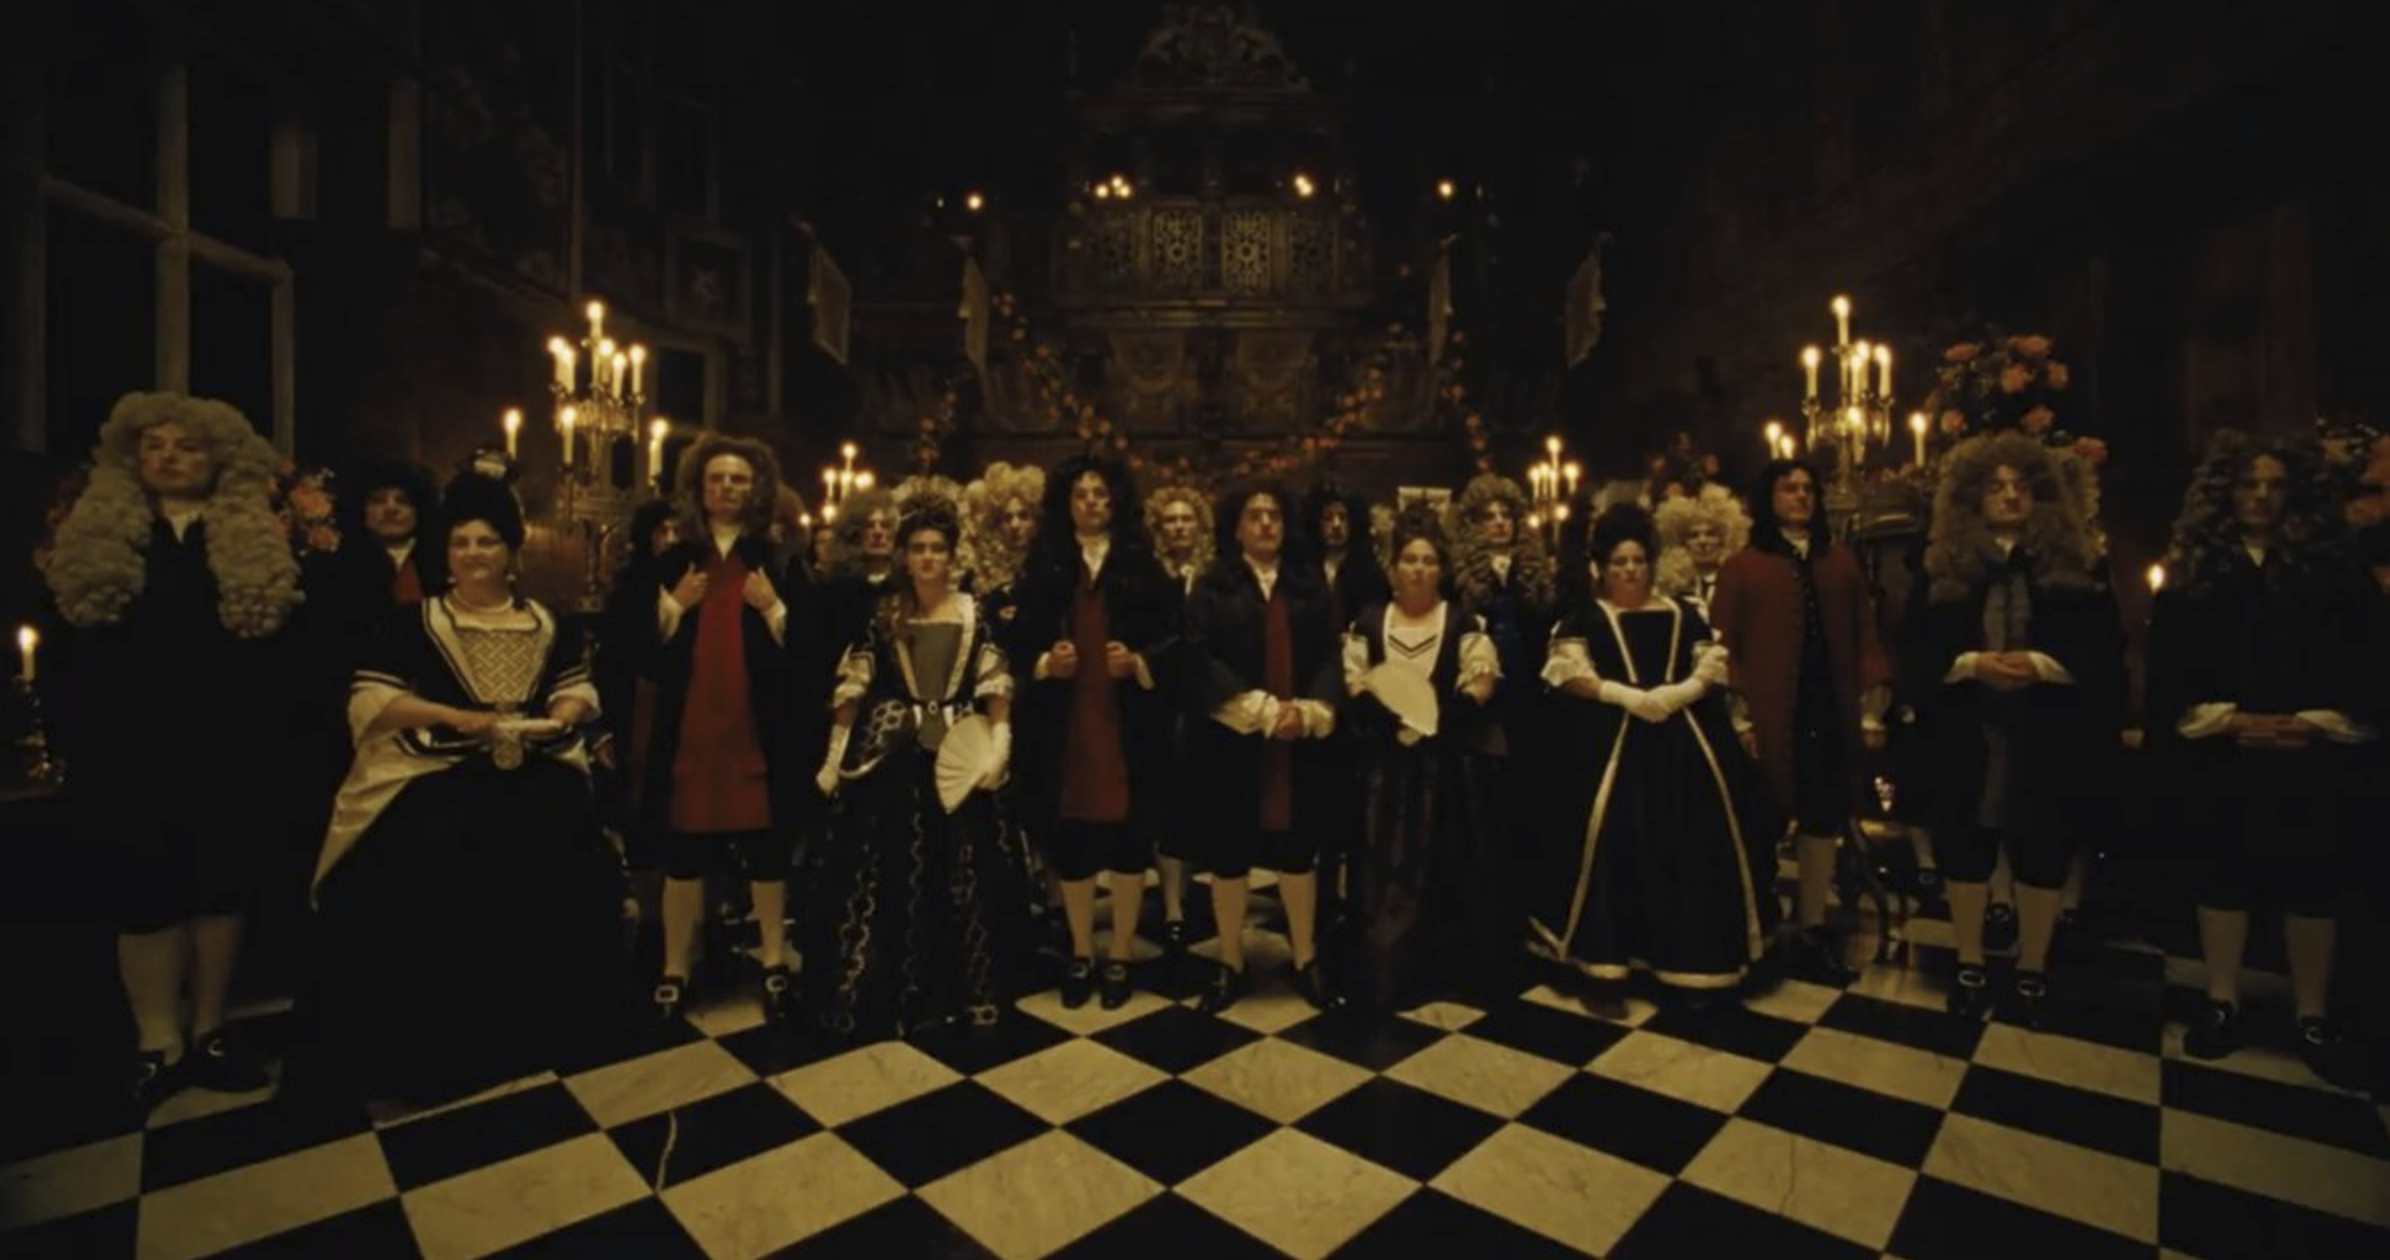 The Favourite  (2018) - courtesy of Fox Searchlight Pictures